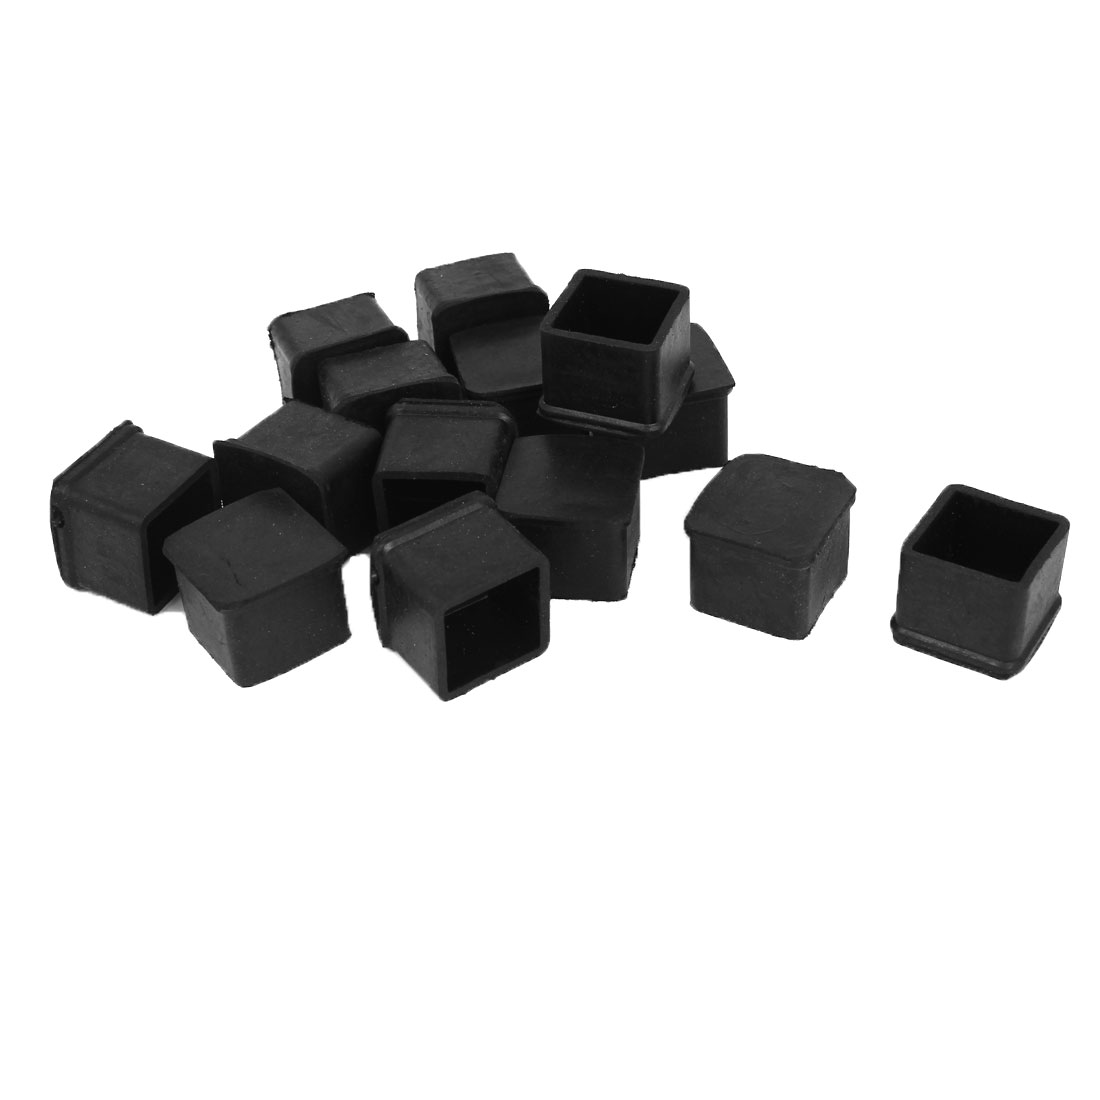 14pcs Black Rubber Furniture Table Foot Leg Covers Pad Floor Protector 25mmx25mm